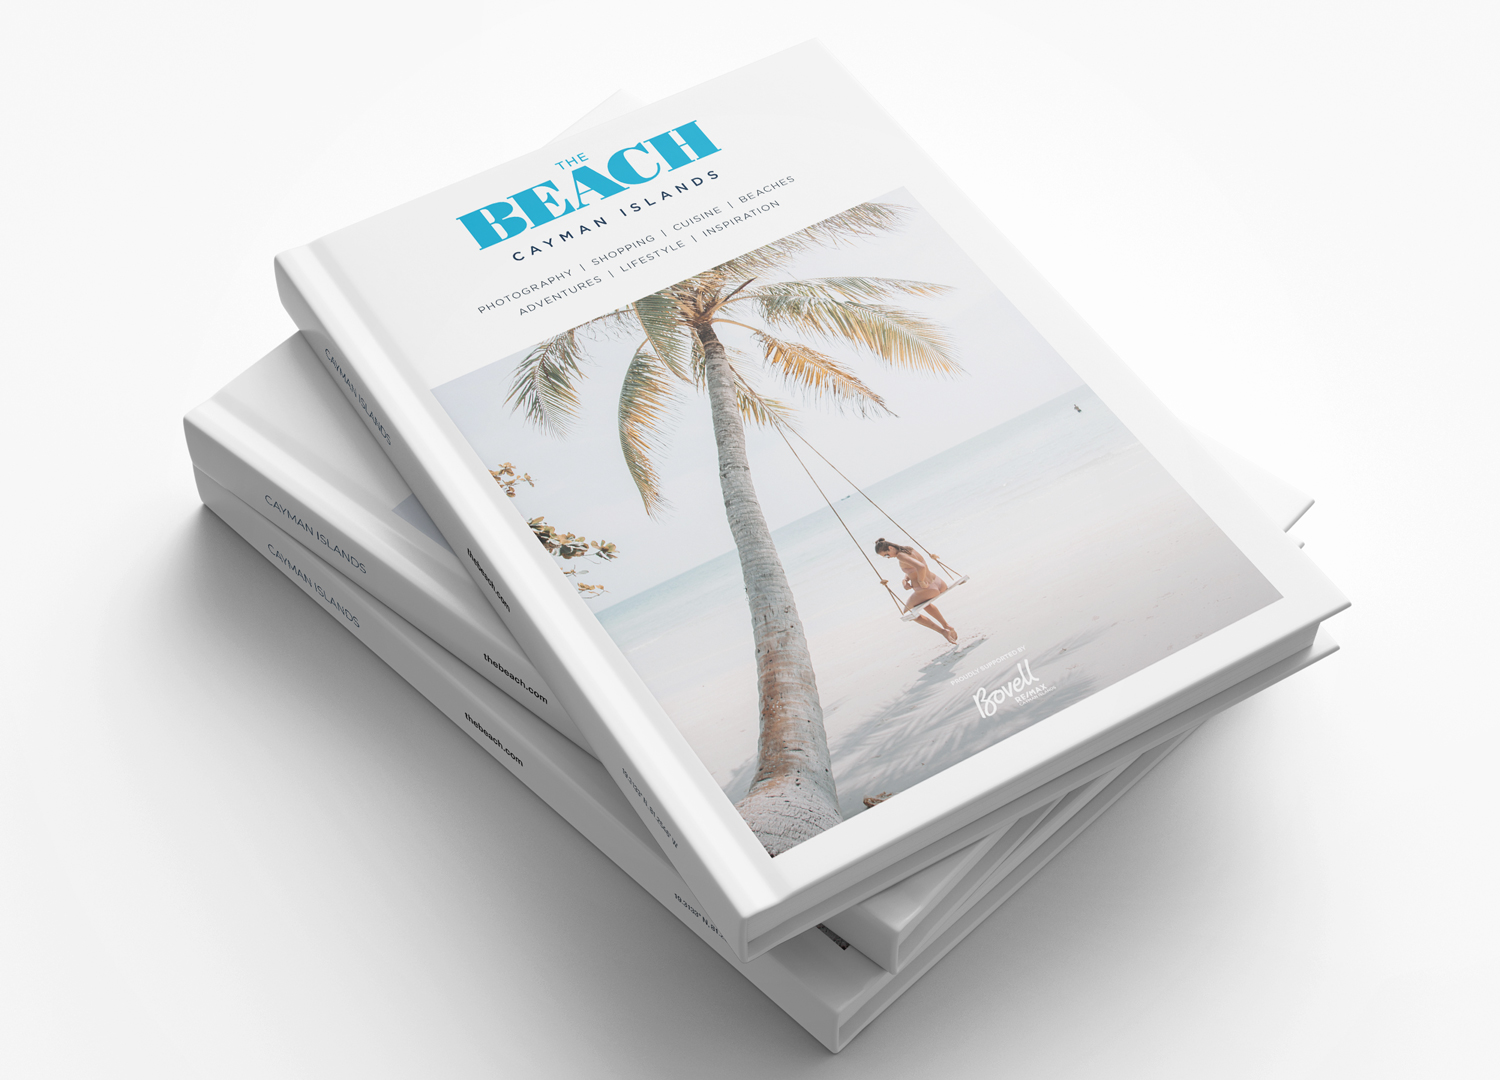 Print Edition - a discerning edit OF PLACES to explore, chill, swim and watch the sun SET over the CARIBBEAN Sea.